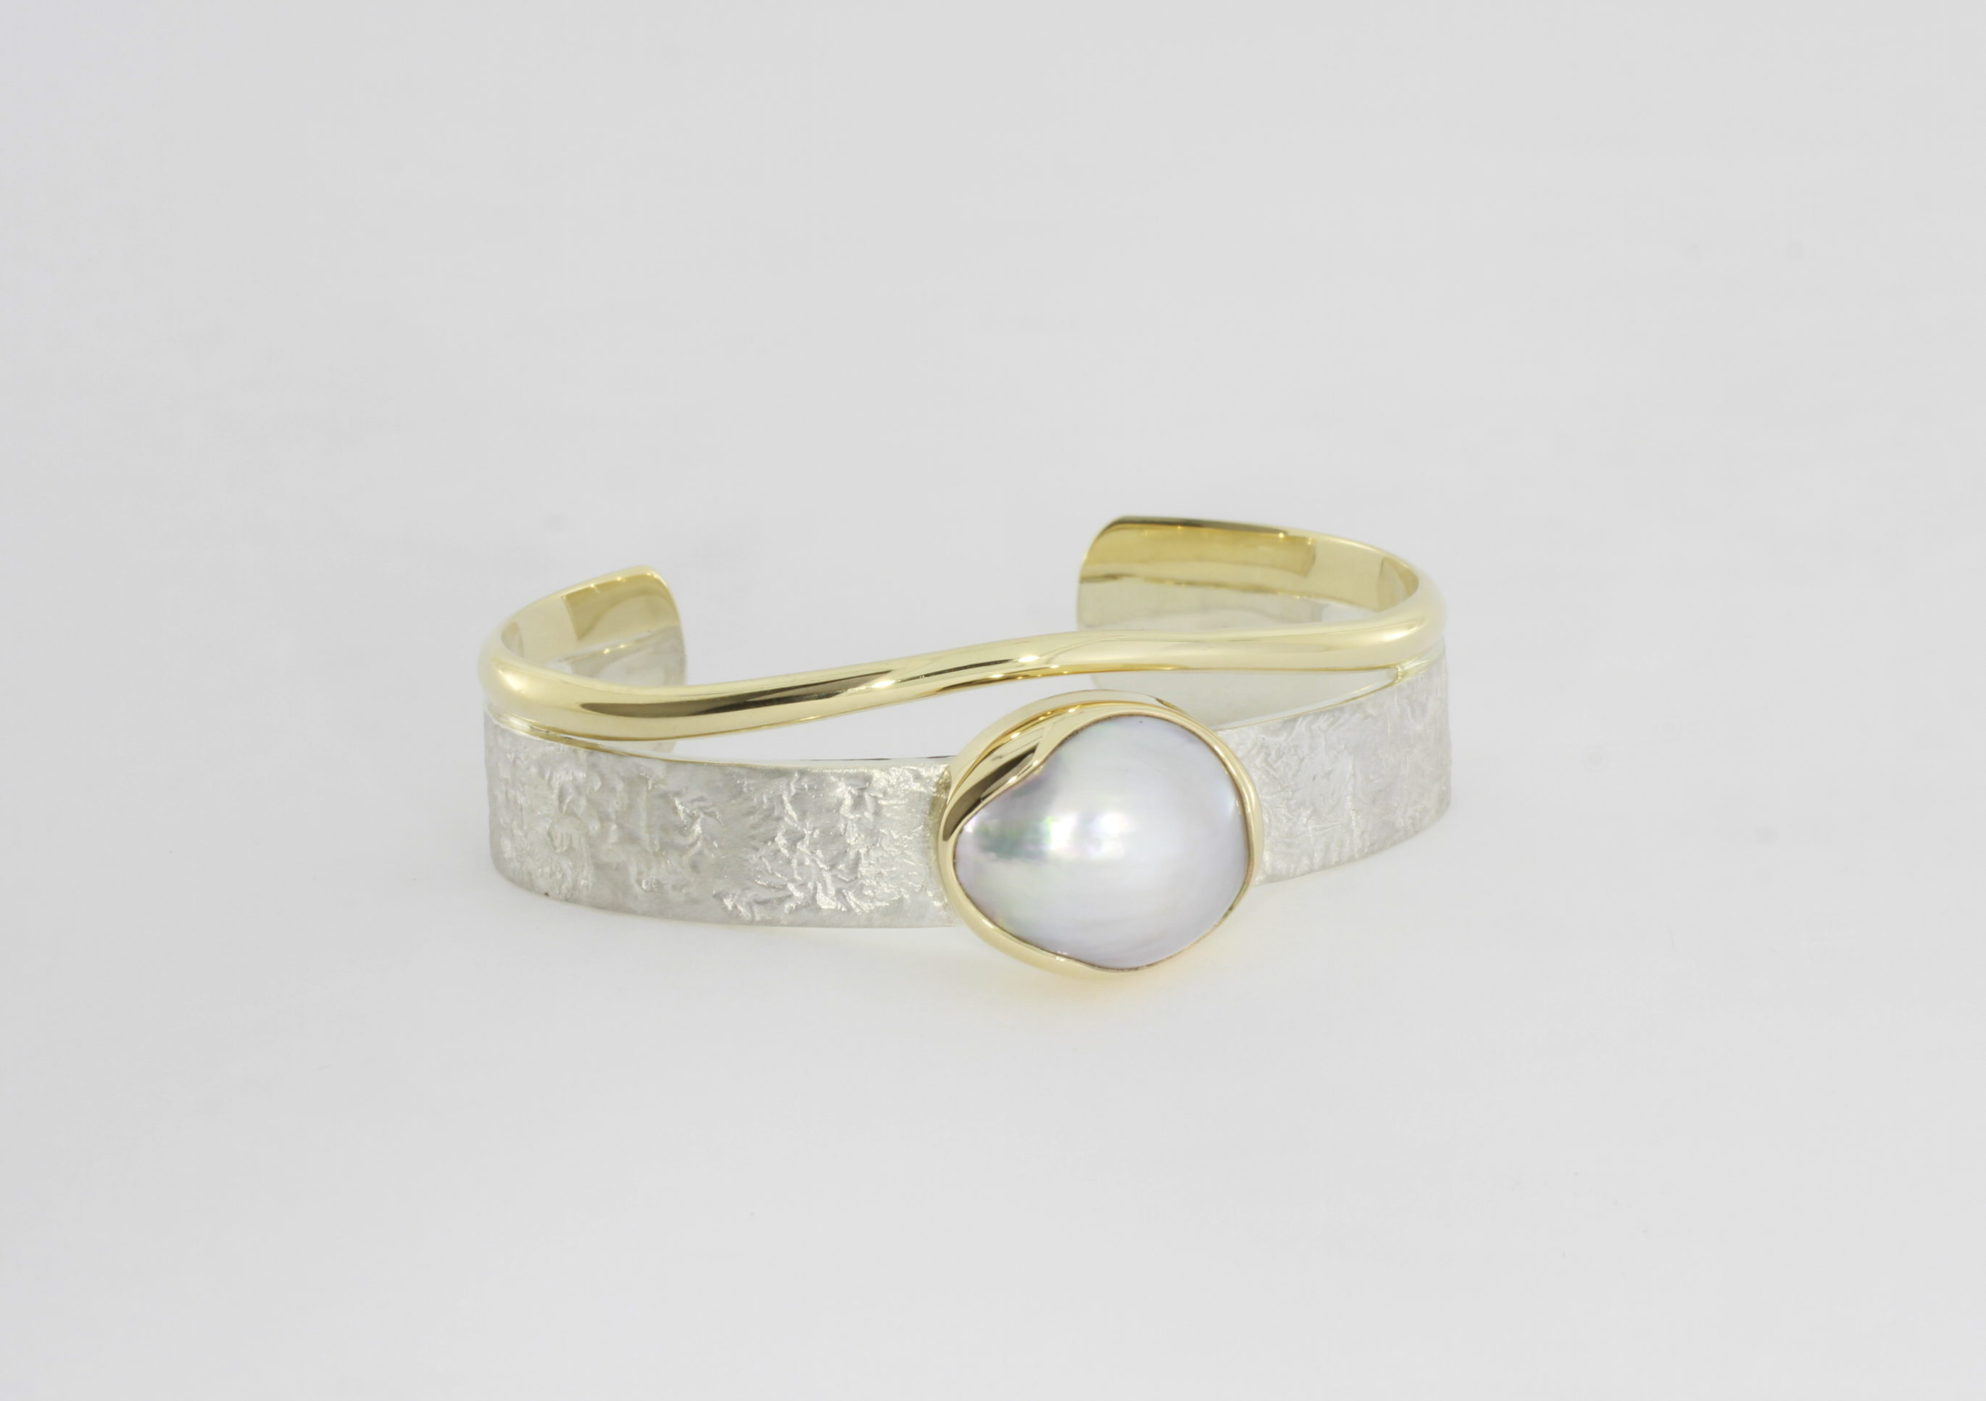 Payet Broome mabe pearl cuff